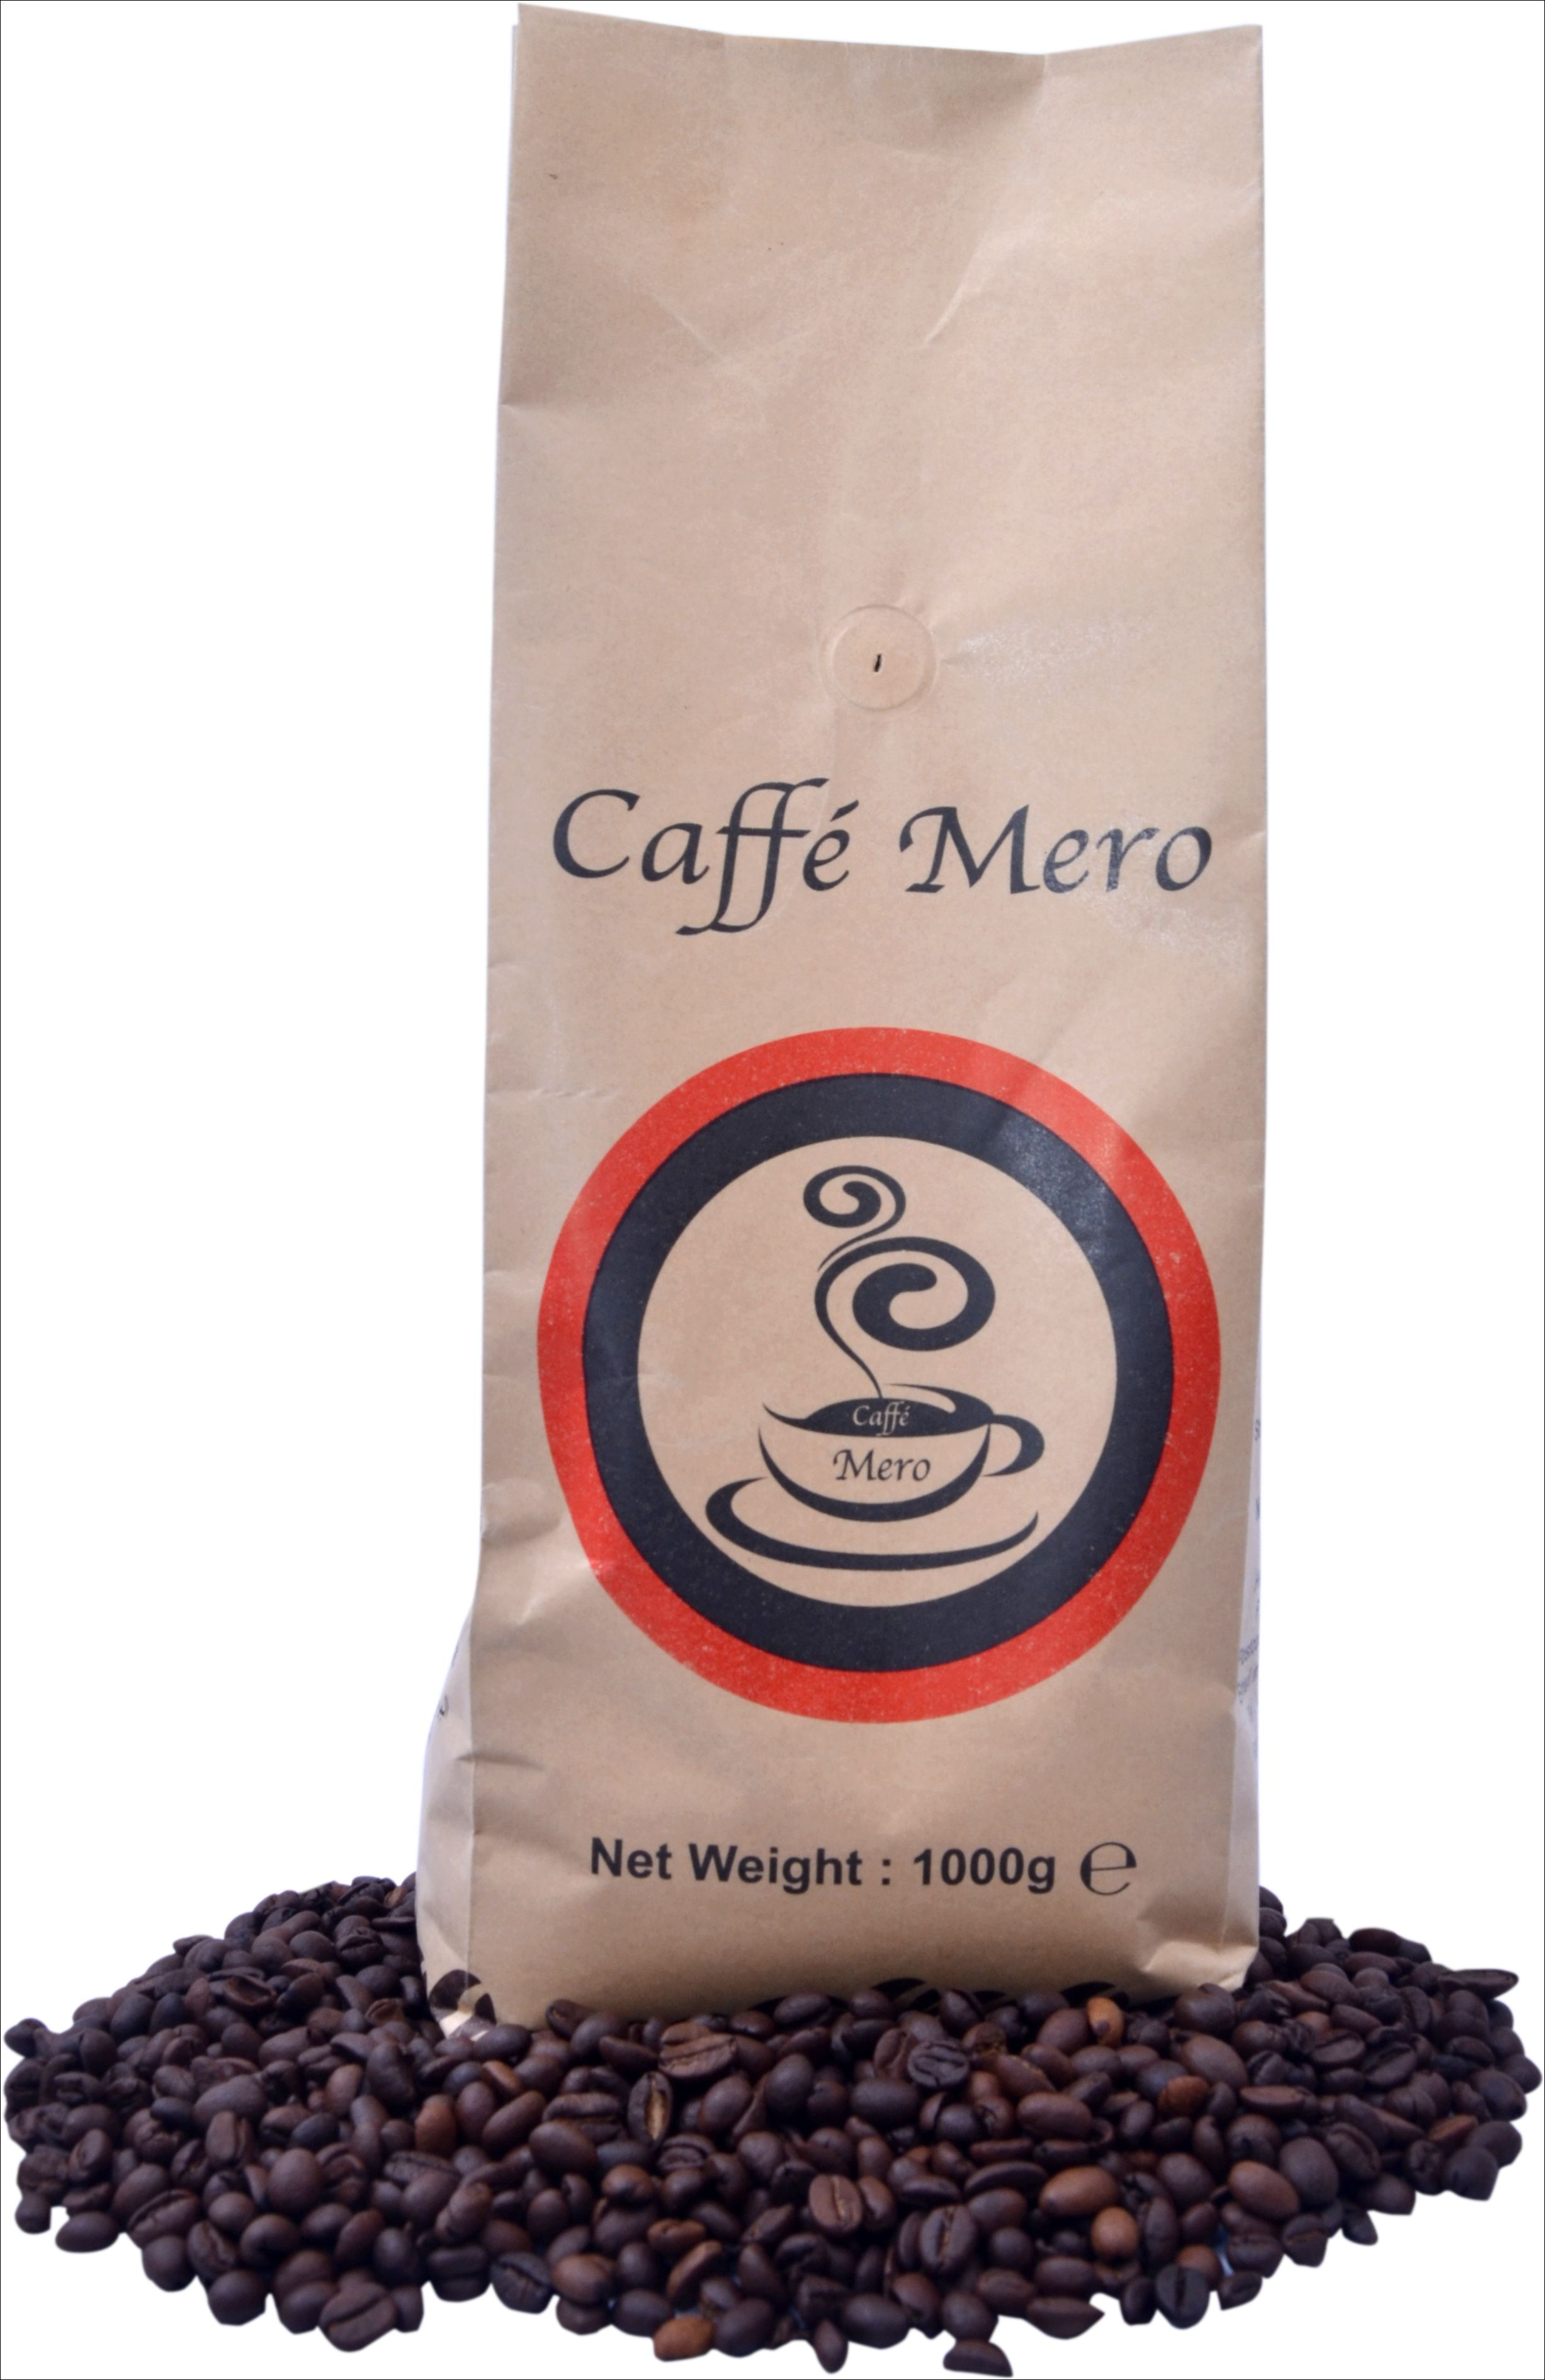 Coffee bags for more information visit us at www